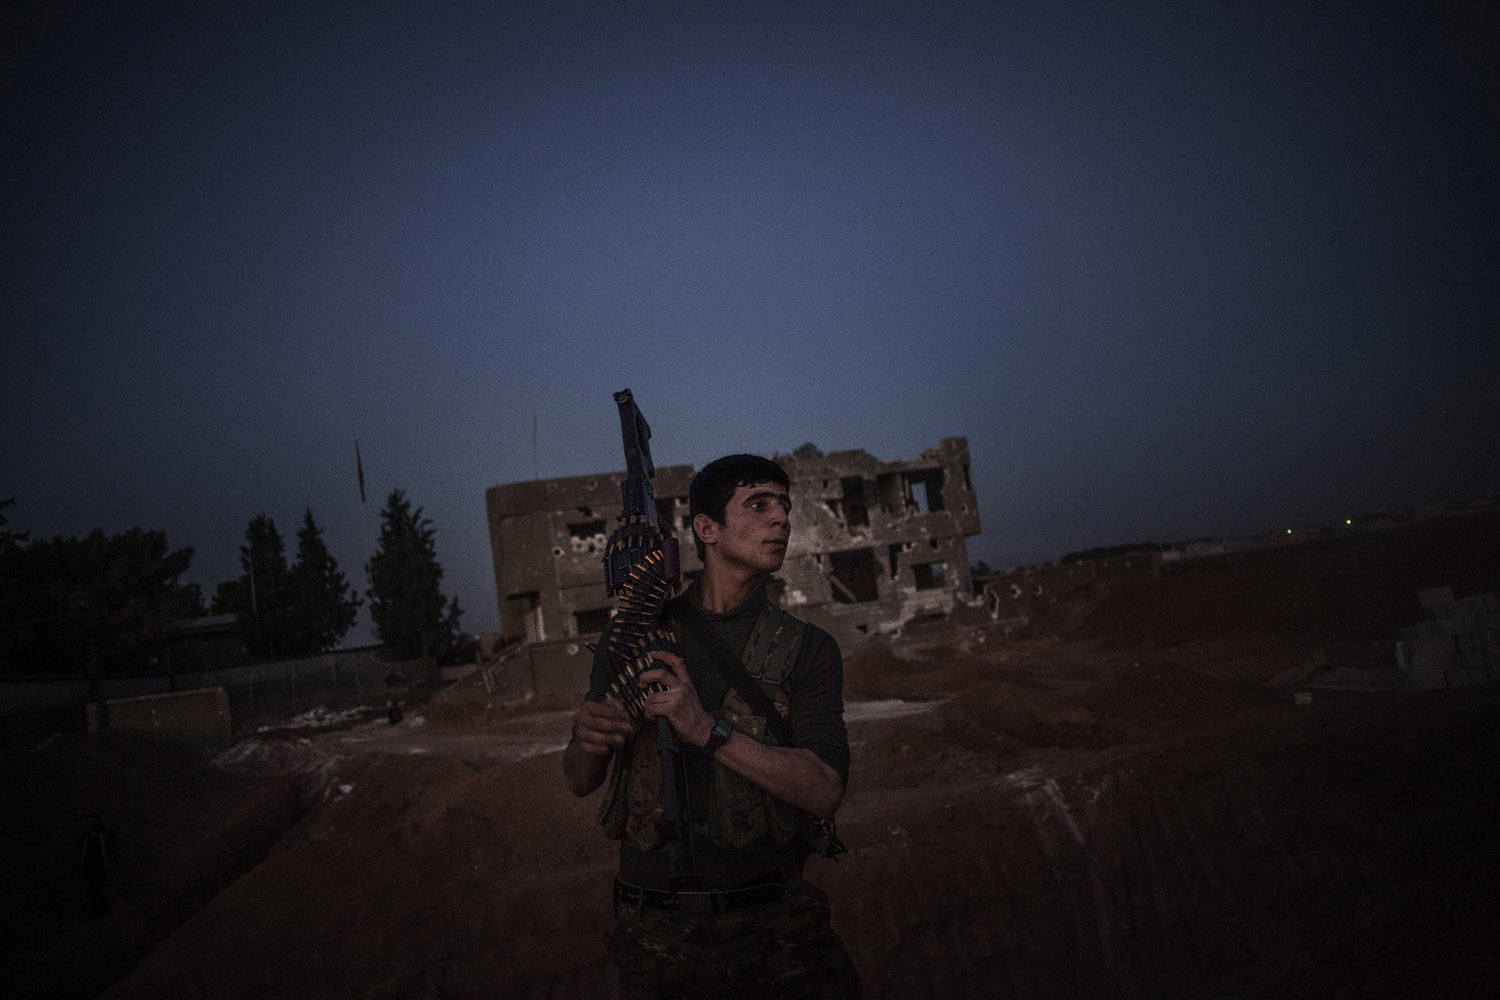 A YPG soldier carries his weapon while heading to his position on the front line in Ras al-Ain, close to the Turkish border.